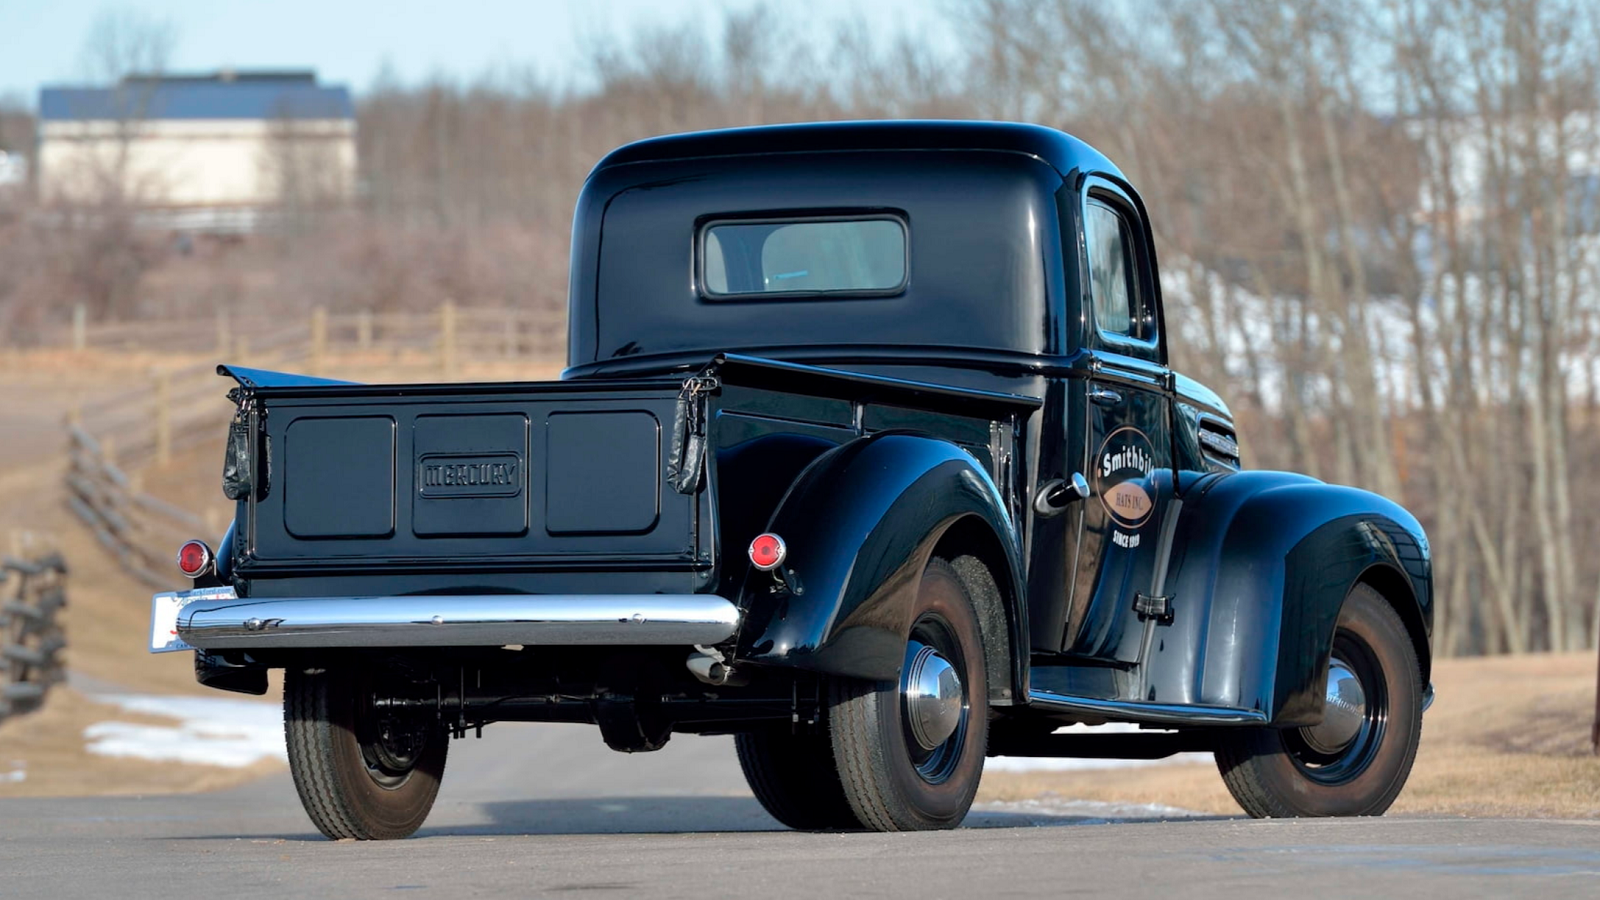 1946 Mercury Pickup Offers One Cool Change of Pace